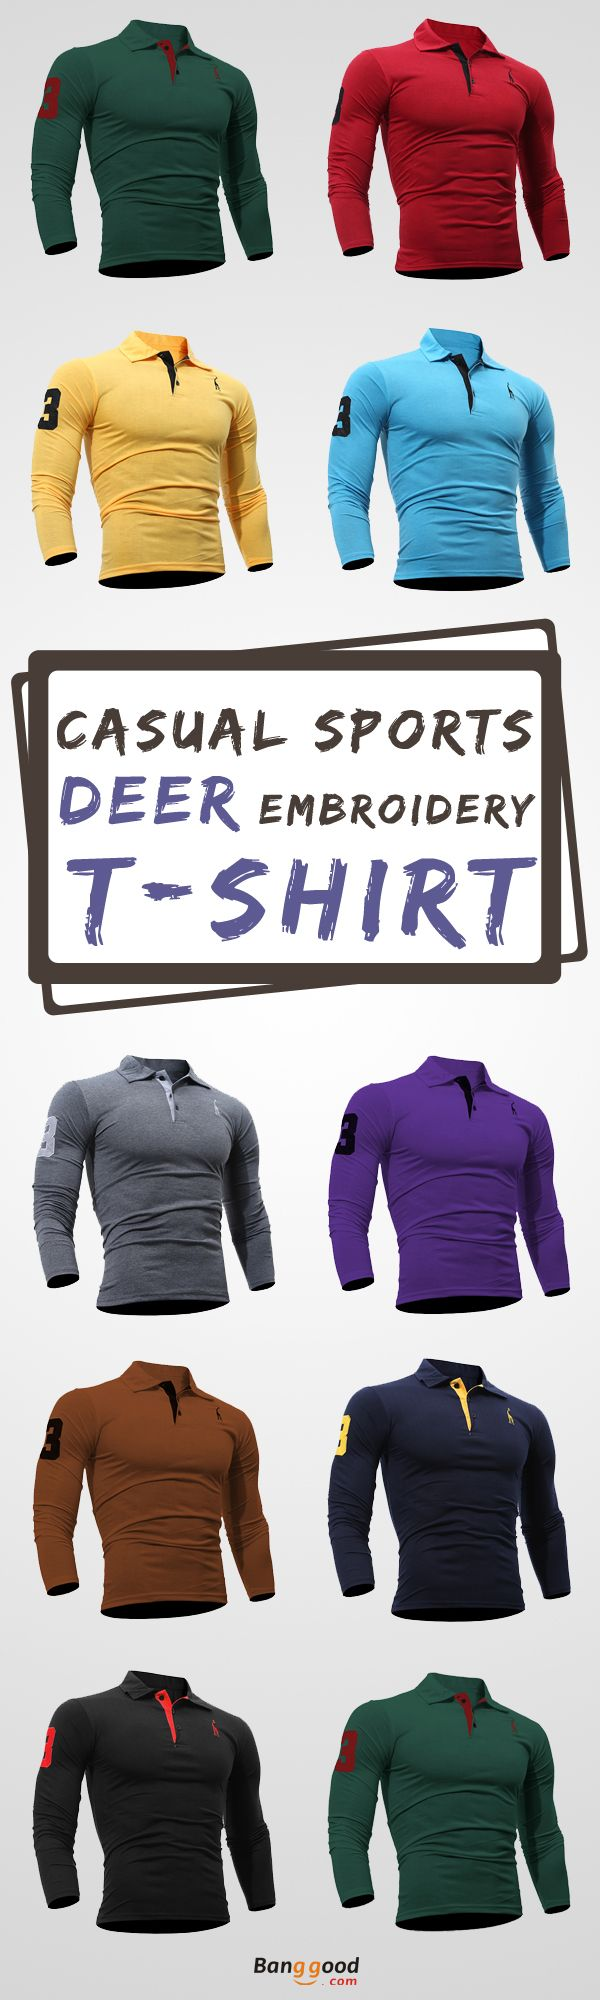 US$9.99 + Free shipping. Size: S~XL. Color: White, Black, Navy, Sky Blue, Red, Dark Gray, Purple, Coffee, Yellow, Green. Fall in love with casual and sports style! Fashion Deer Embroidered T-shirt Men's Casual Solid Color Slim Fit Long Sleeved T-shirt. #mens #shirts